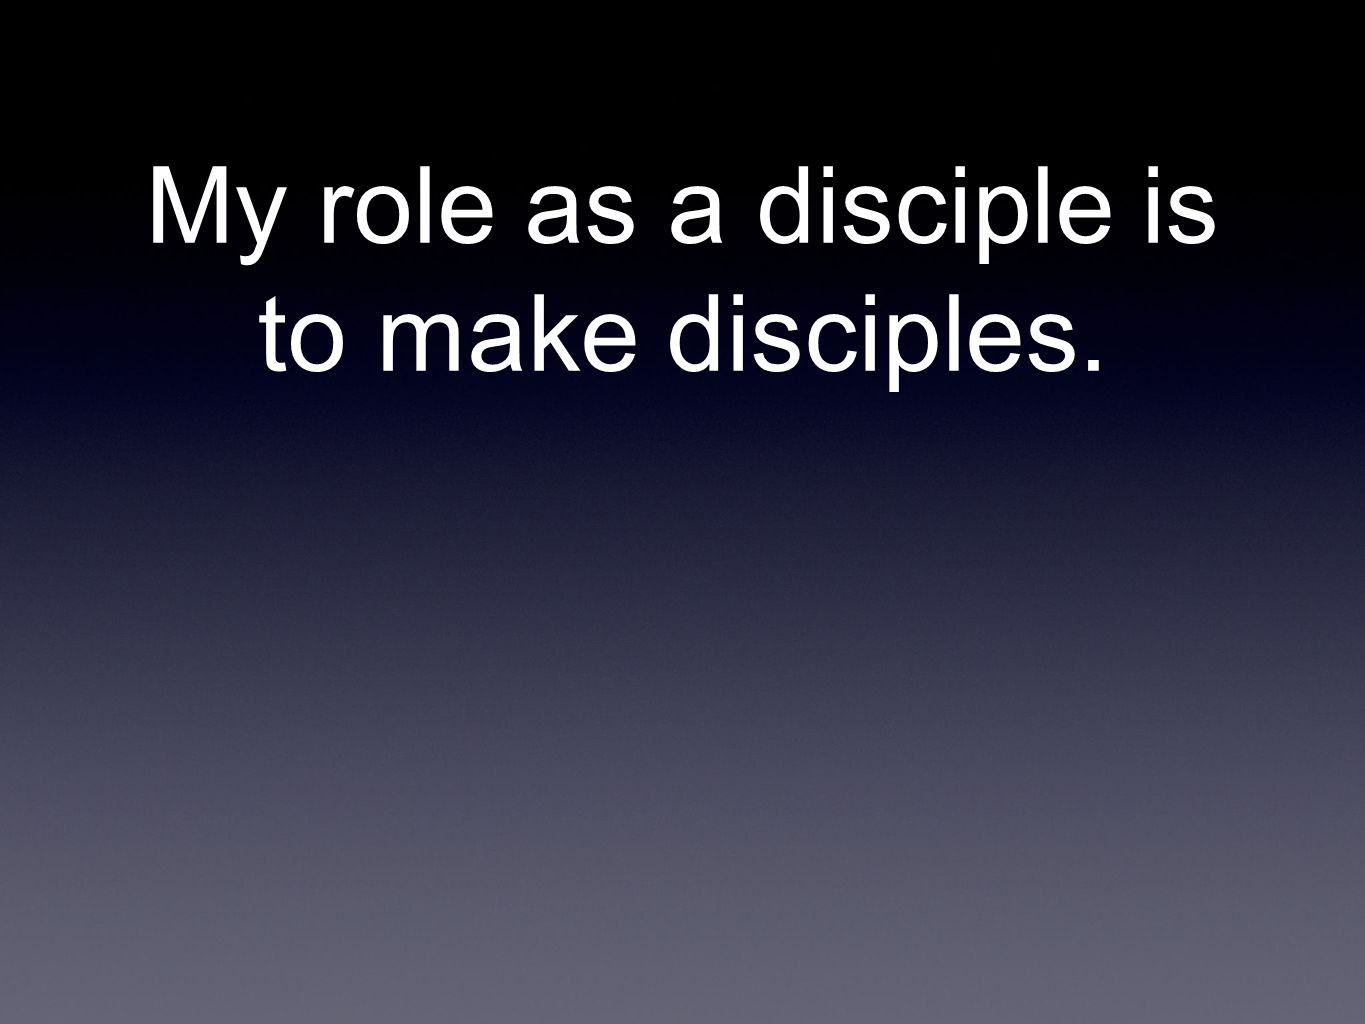 My role as a disciple is to make disciples.